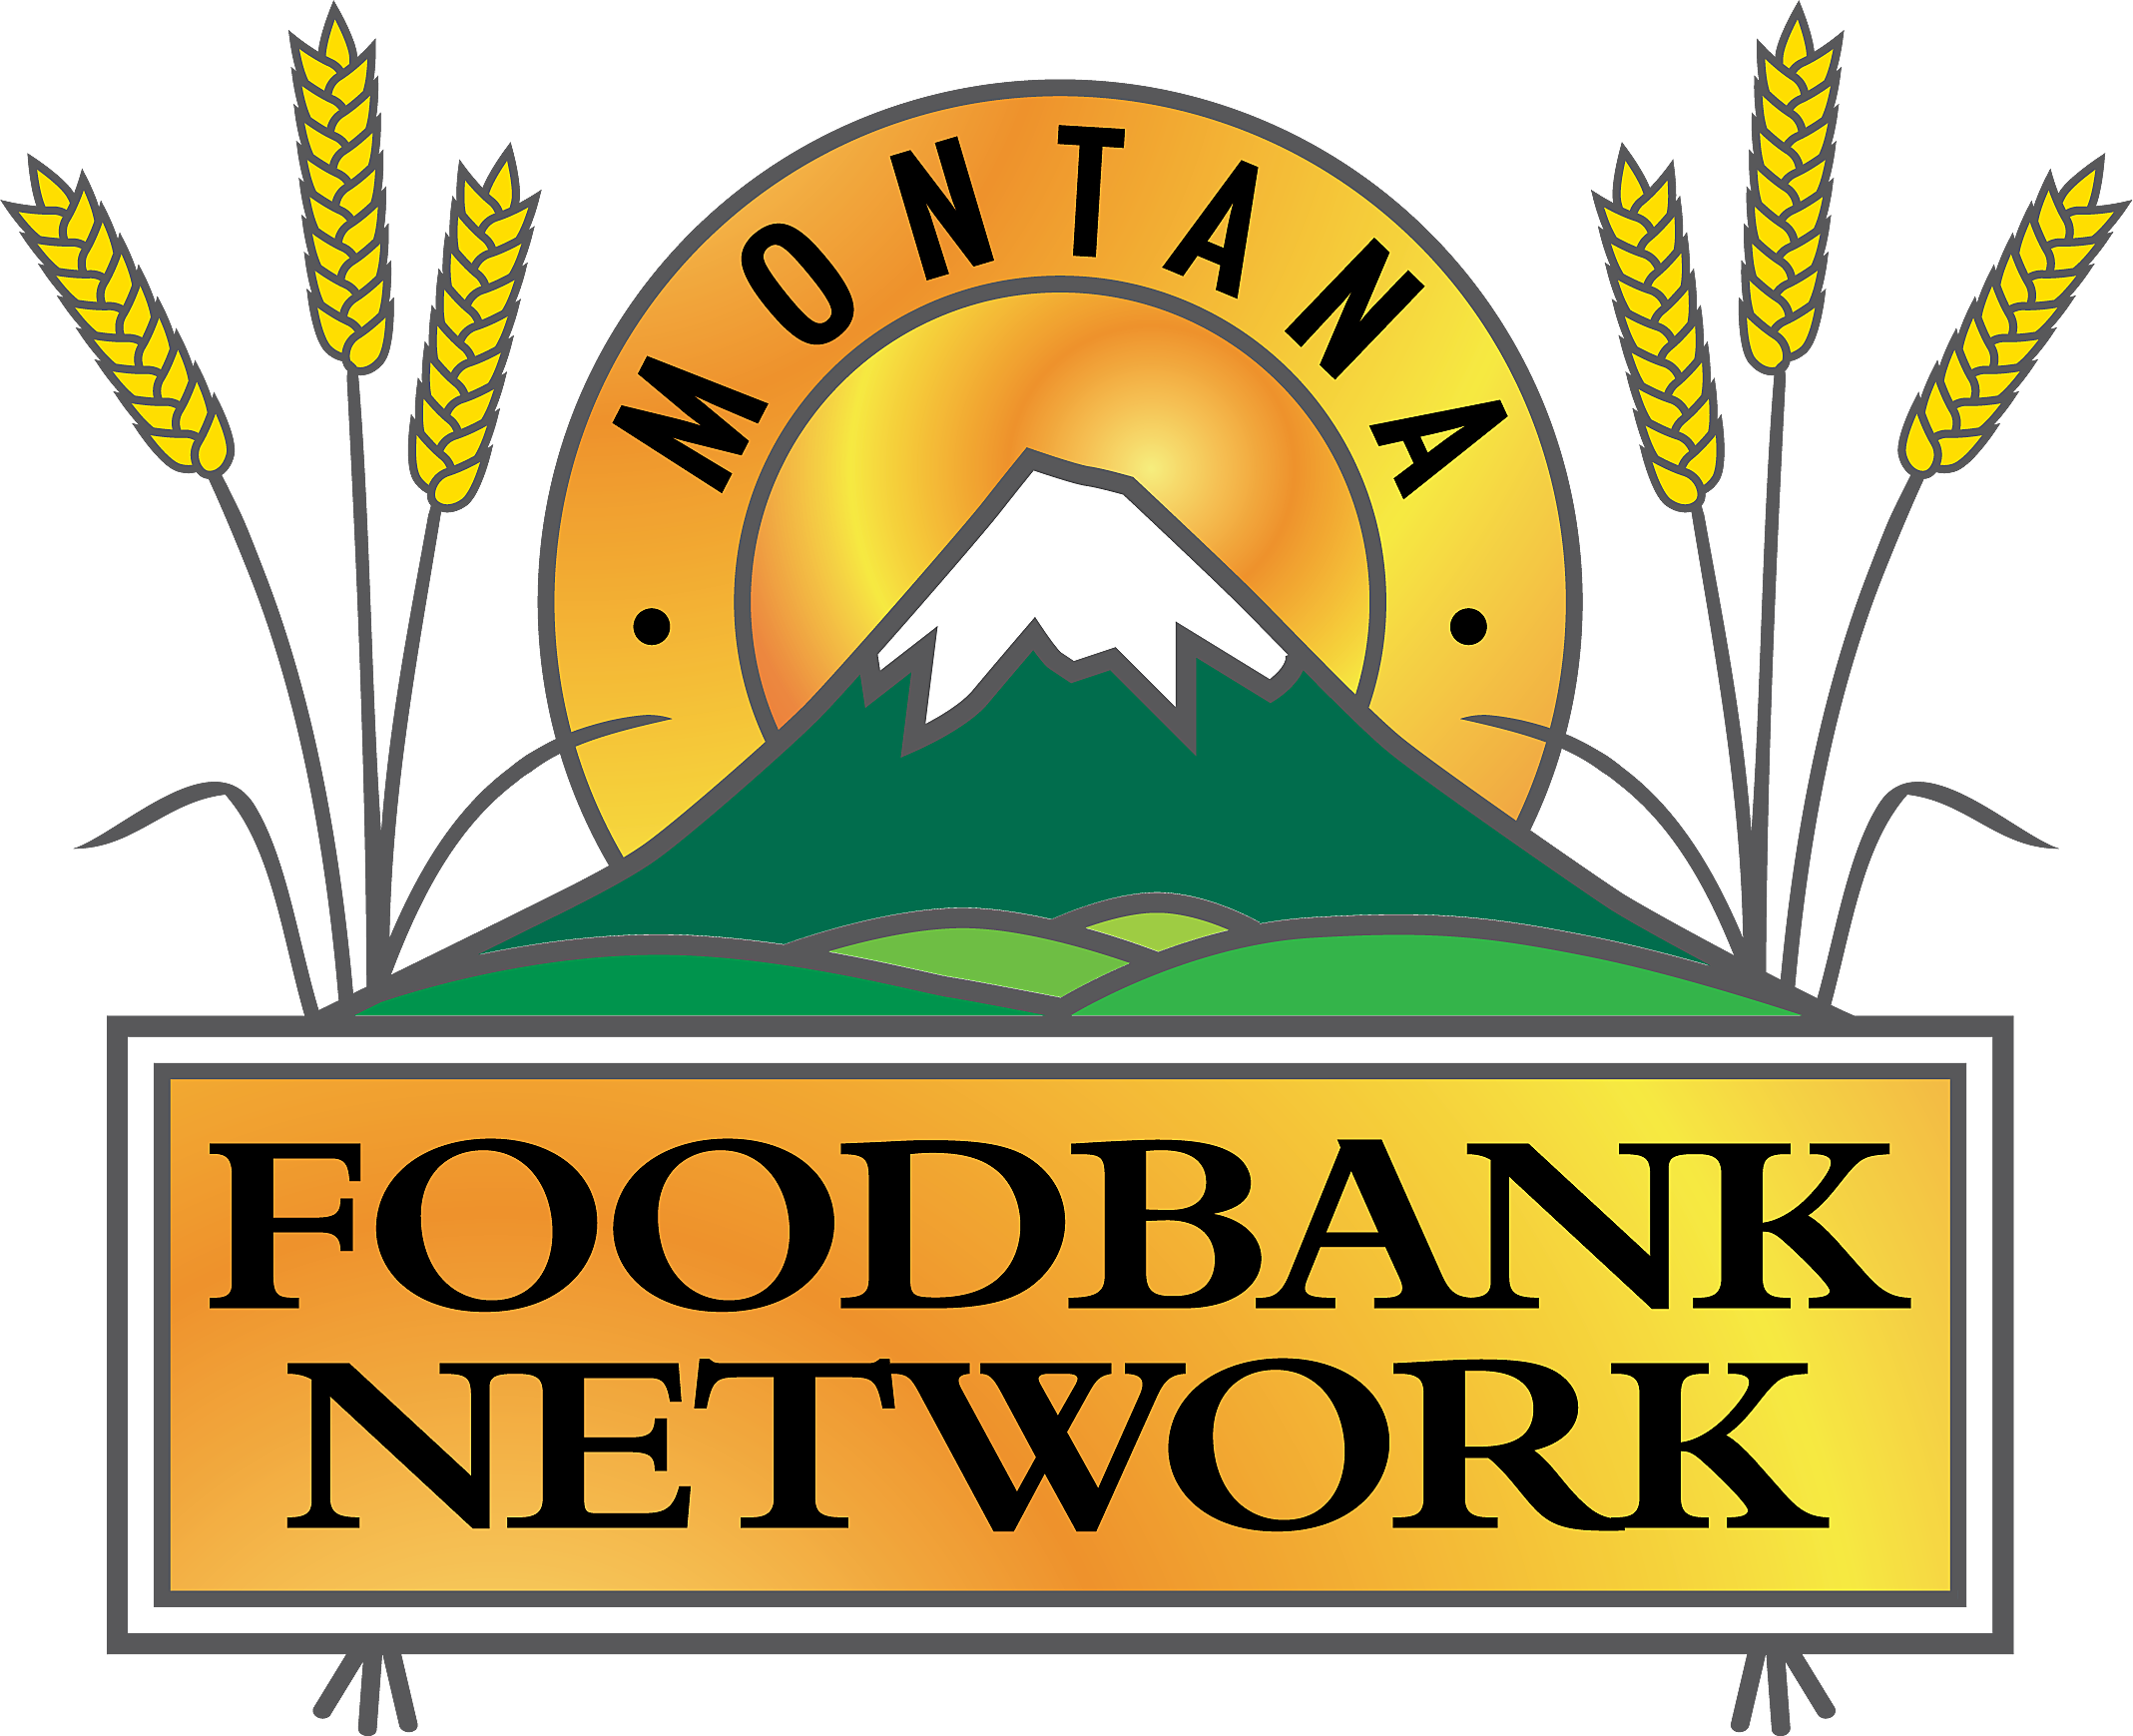 Donation clipart non perishable food. Don t let montanans